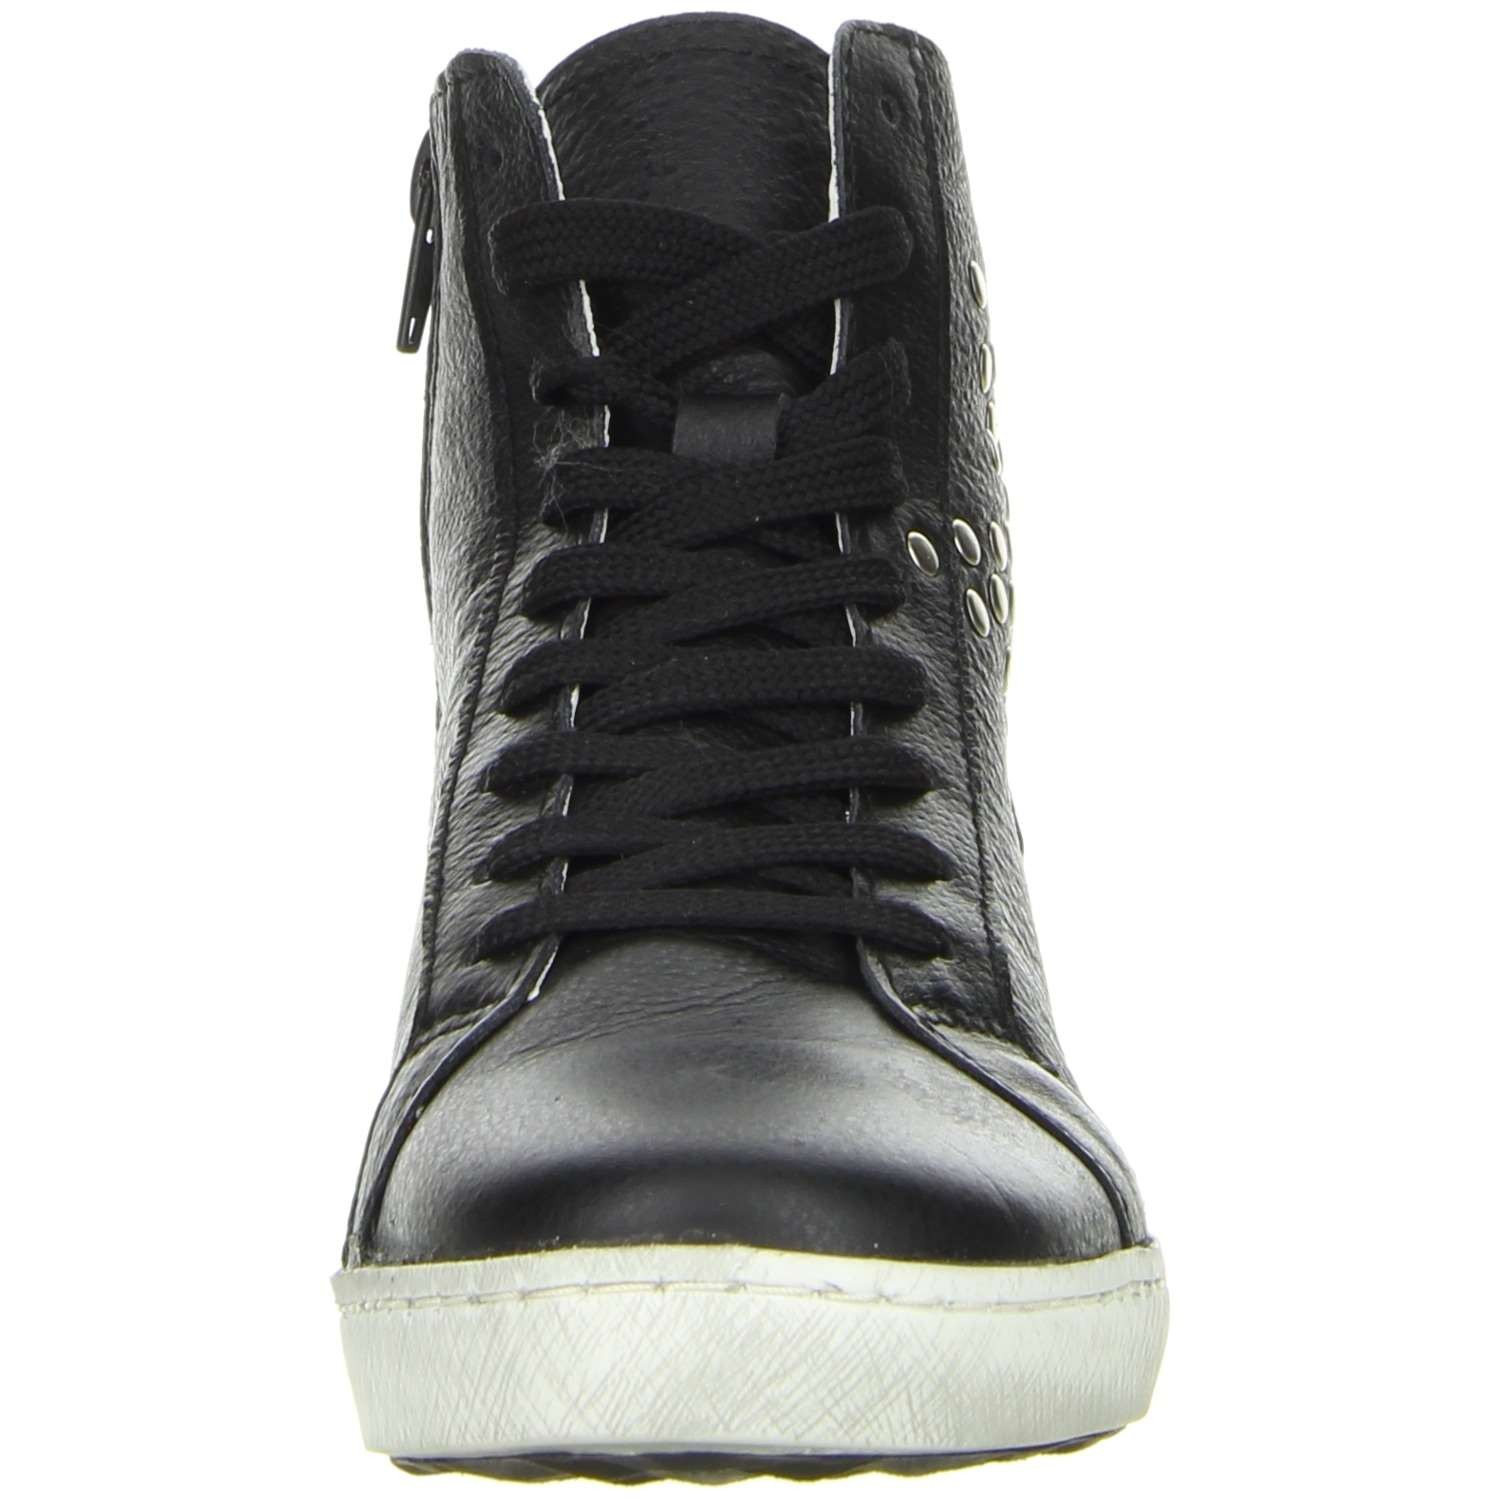 vista damen high top sneaker schwarz damenschuhe sneaker. Black Bedroom Furniture Sets. Home Design Ideas